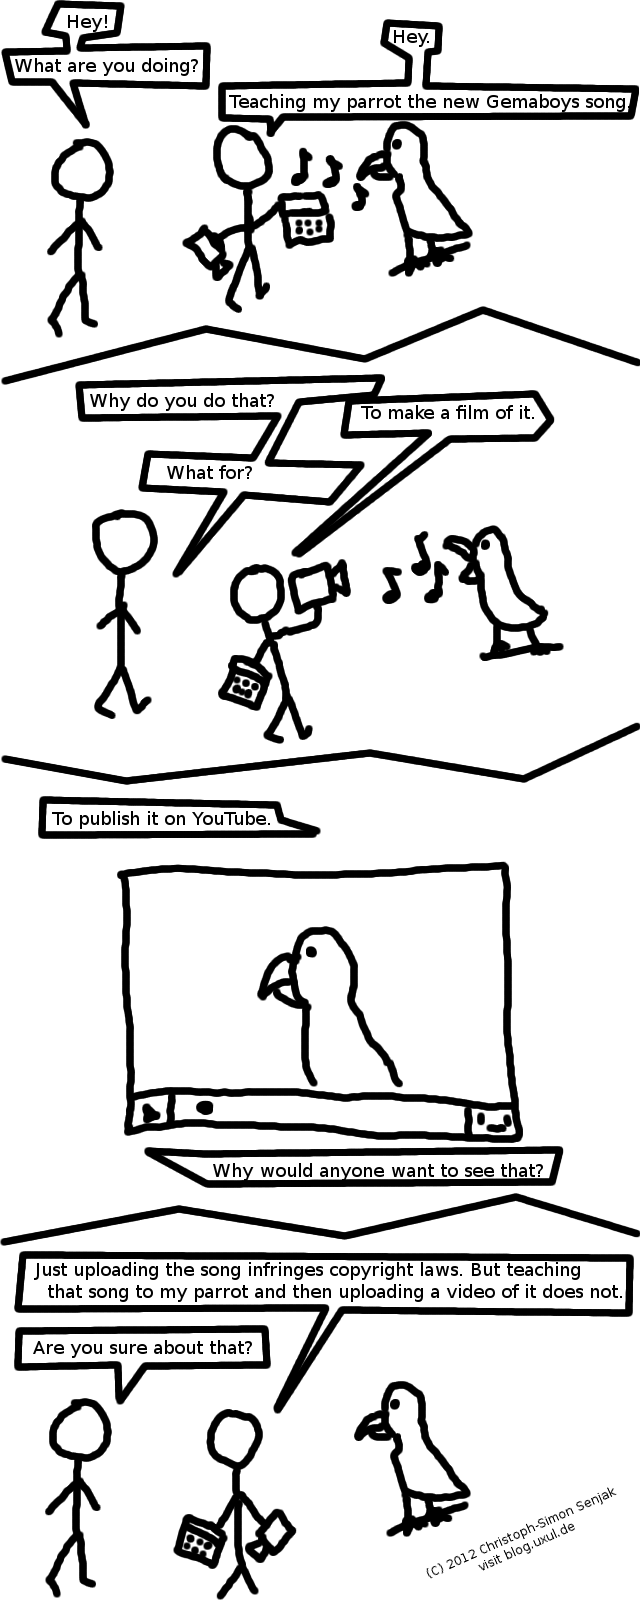 "Panel 1: Person A: ""Hey! What are you doing?"" Person B (holding a radio, playing music to a parrot): ""Hey. Teaching my parrot the new Gemaboys song."" -- Panel 2: Person A: ""Why do you do that?"" Person B (Now pointing a camera at his singing parrot): ""To make a film of it."" Person A: ""What for?"" -- Panel 3: A YouTube window with the parrot is shown. Person B: ""To publish it on YouTube."" Person A: ""Why would anyone want to see that?"" -- Panel 4: Person B: ""Just uploading the song infringes copyright laws. But teaching that song to my parrot and then uploading a video of it does not."" Person A: ""Are you sure about that?"""